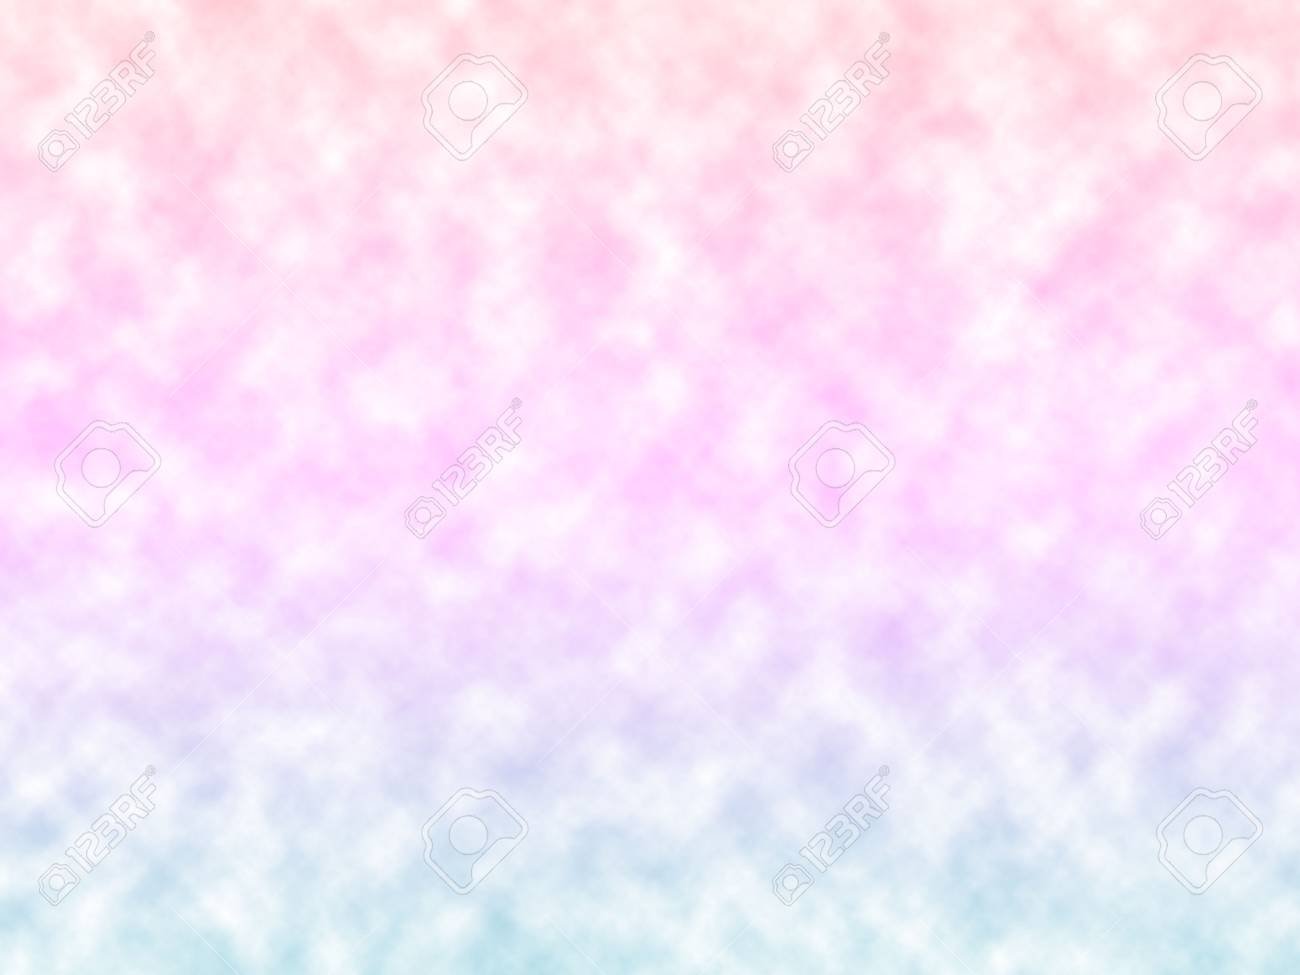 Soft Sweet Blurred Pastel Color Background Abstract Gradient